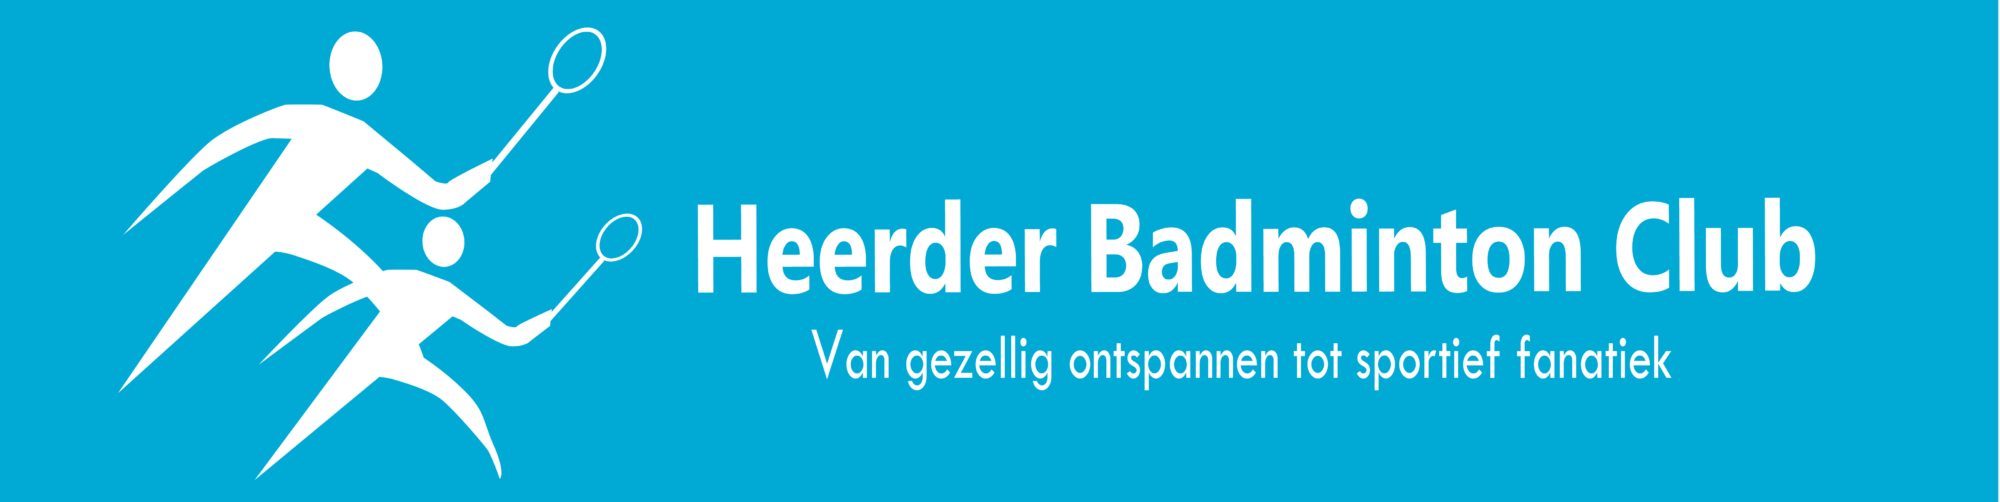 Heerder Badminton Club